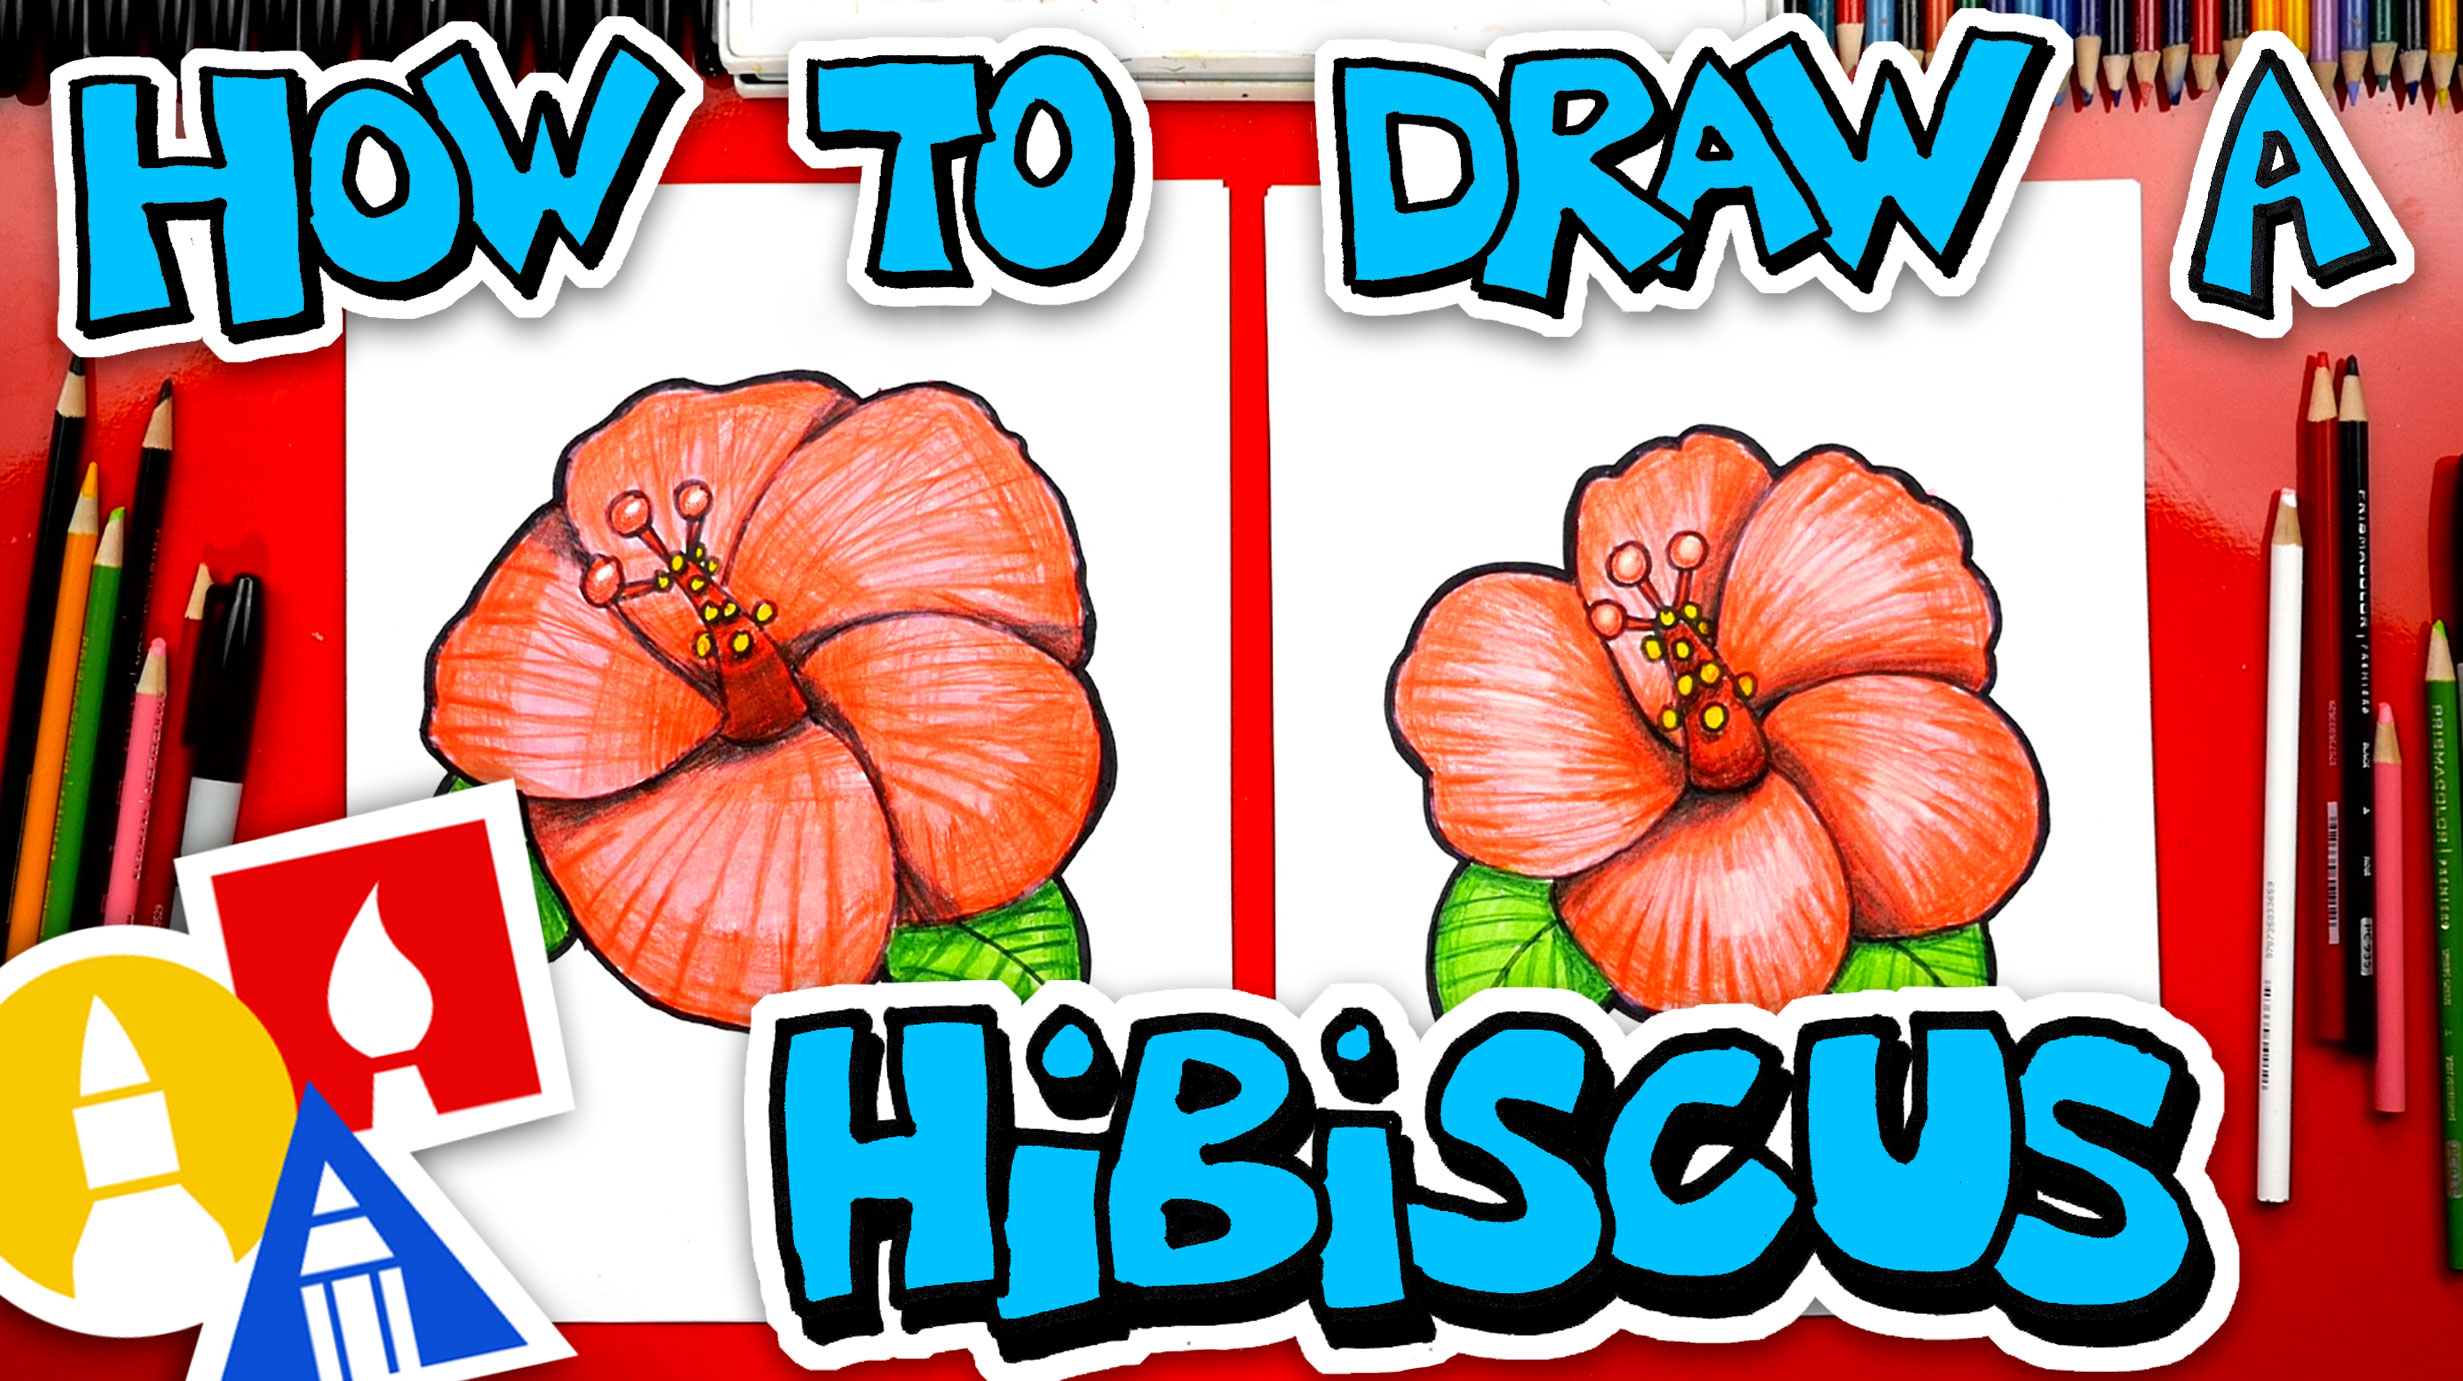 How To Draw A Hibiscus Flower Emoji Art For Kids Hub